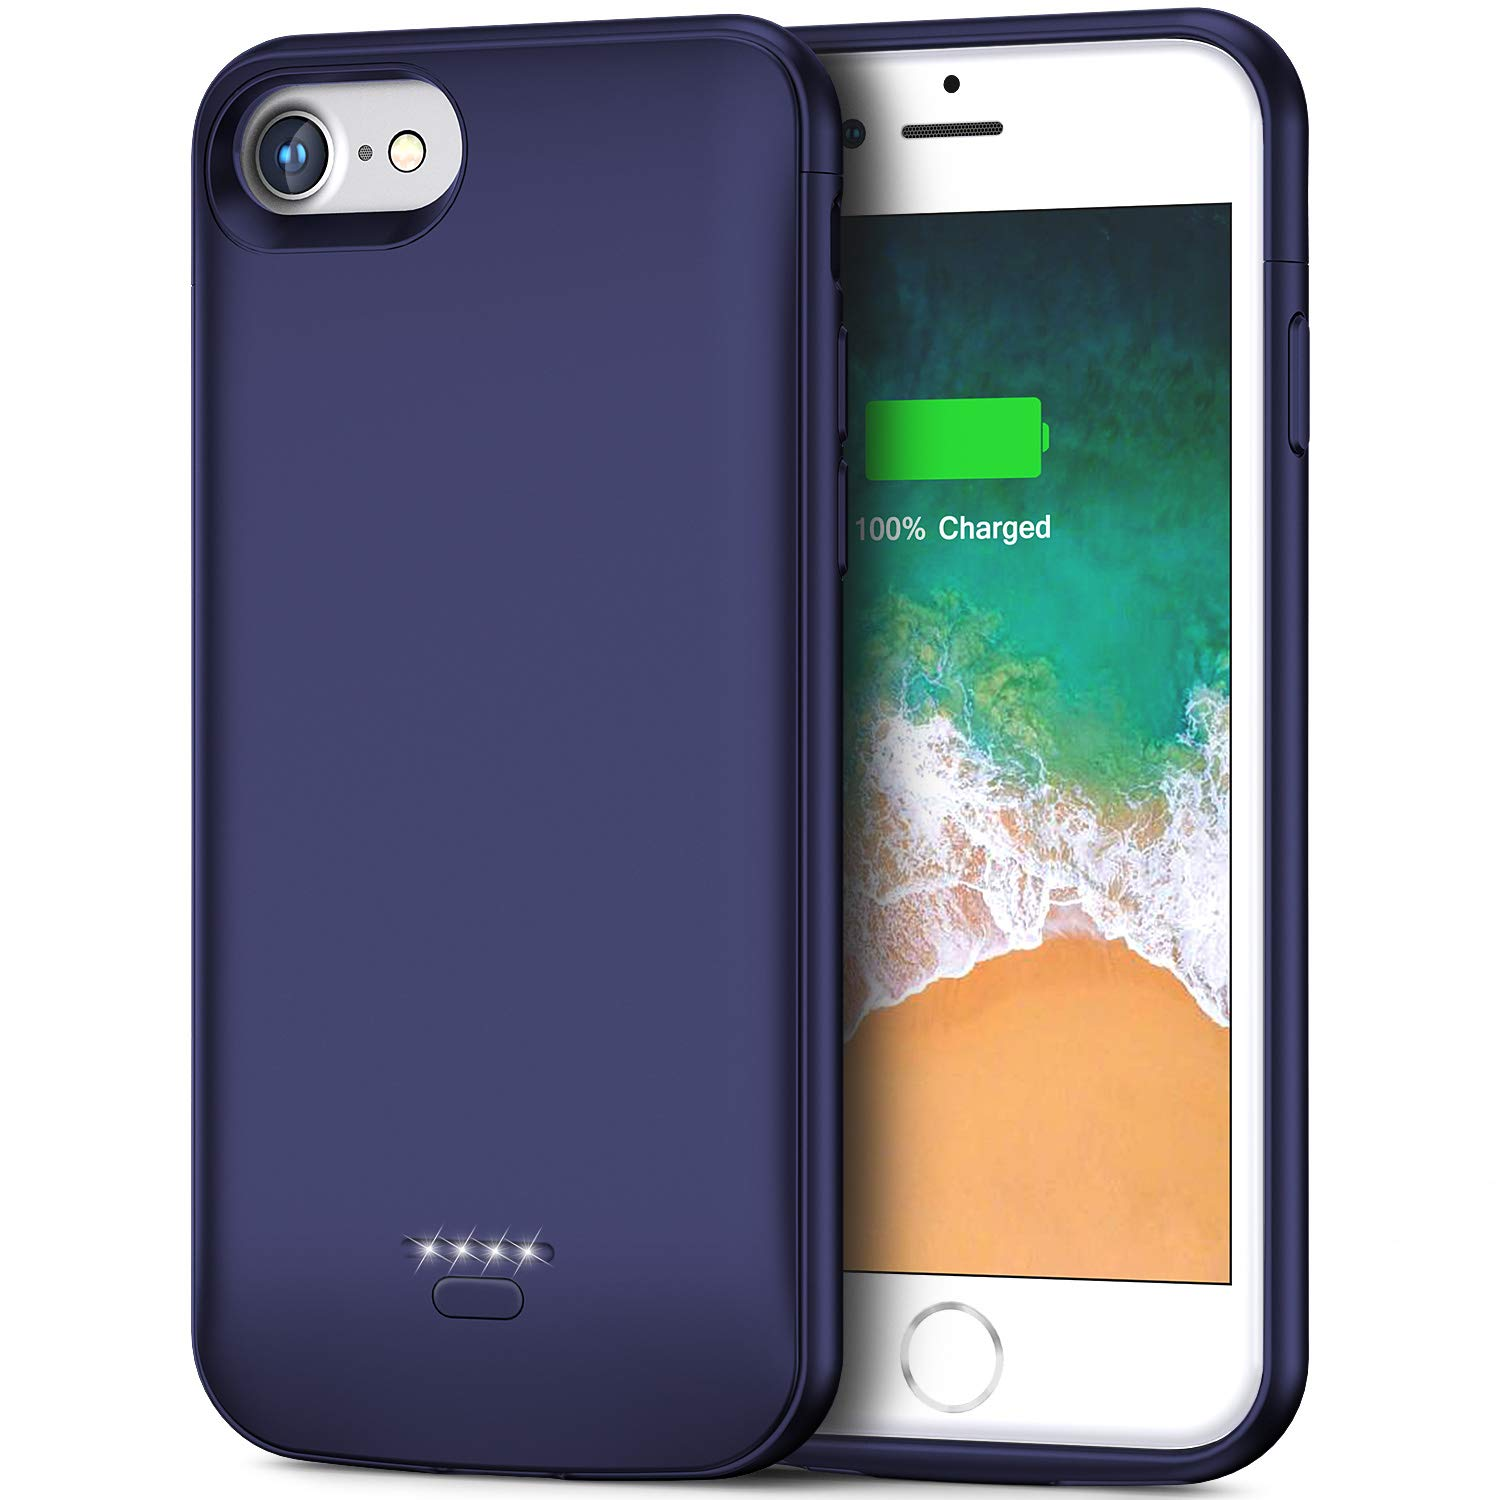 iPhone 6 6s Battery Case, 4000mAh Portable Protective Charging Case for iPhone 6 6s(4.7 inch) Extended Battery Charger Case (Blue) Smiphee